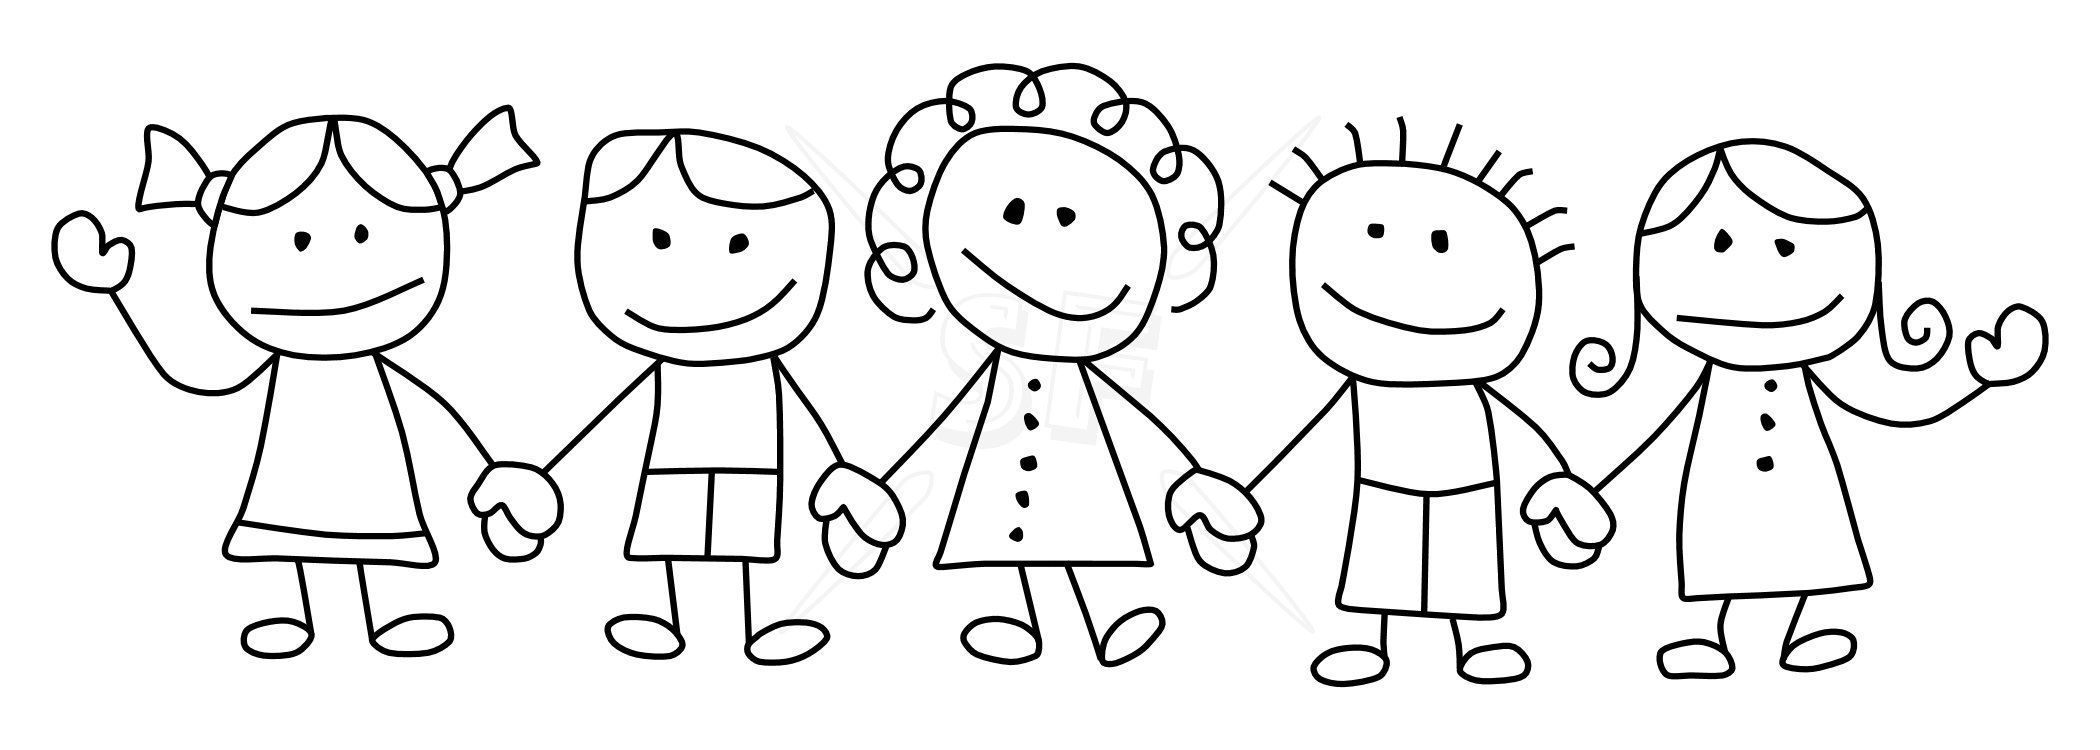 Black and white stick chldren clipart free image library Pin by Tatyana Stomaty on coloring2 | Stick figures, Clip art, Clip ... image library